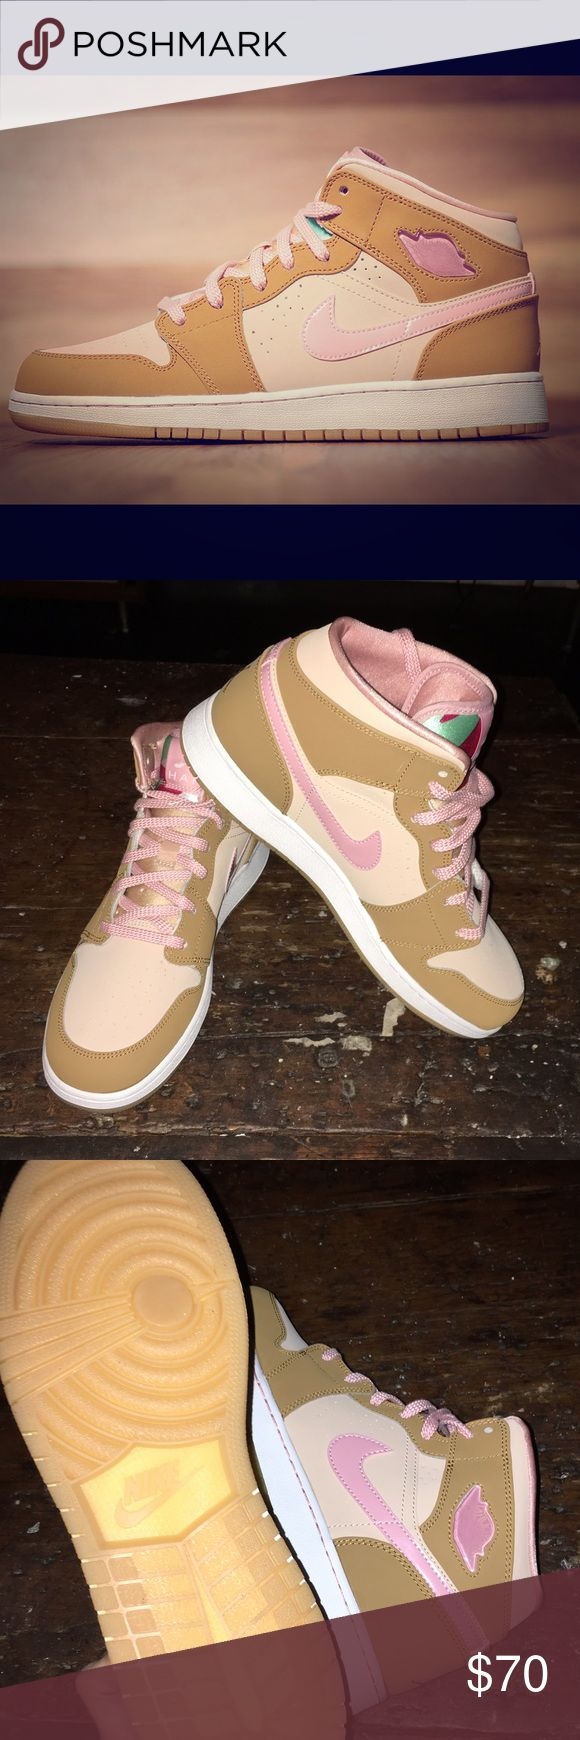 Air Jordan 1 MID Lola Bunny size L10.5, M9, EU42.5 Air Jordan 1 MID Lola Bunny size L10.5, M9, EU42.5, UK8-- technically these are men's, but can be worn by women too! Lola bunny (Space Jam) Nike Air Jordan's! Light pink w/ 2 shades of tan. These are fun, would make a great holiday present! New, no tags, no box-- slight stain on the inside of the right shoe (see last pic) Nike Shoes Sneakers